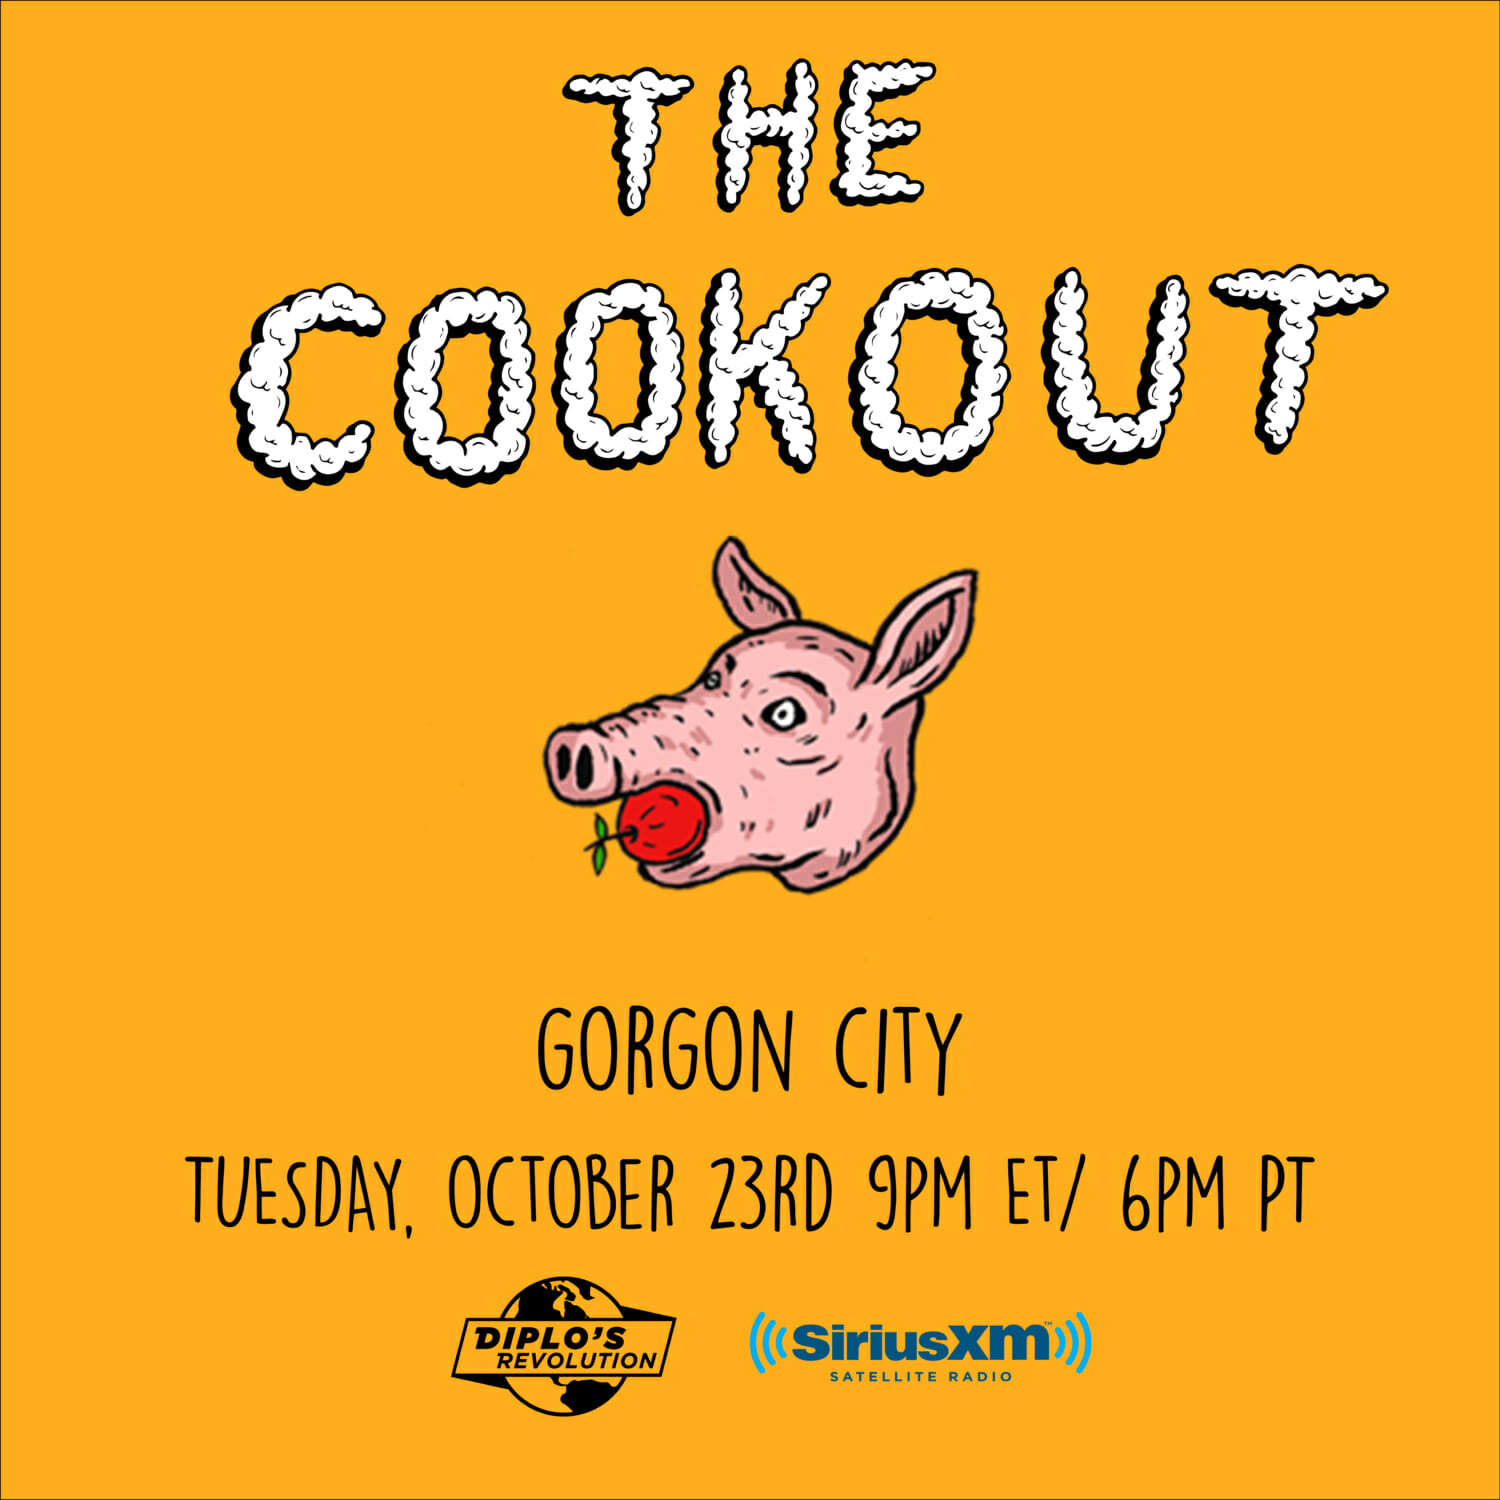 Good Morning Mix: Gorgon City dishes out house beats on new Cookout mix [Exclusive]Gorgon City 1